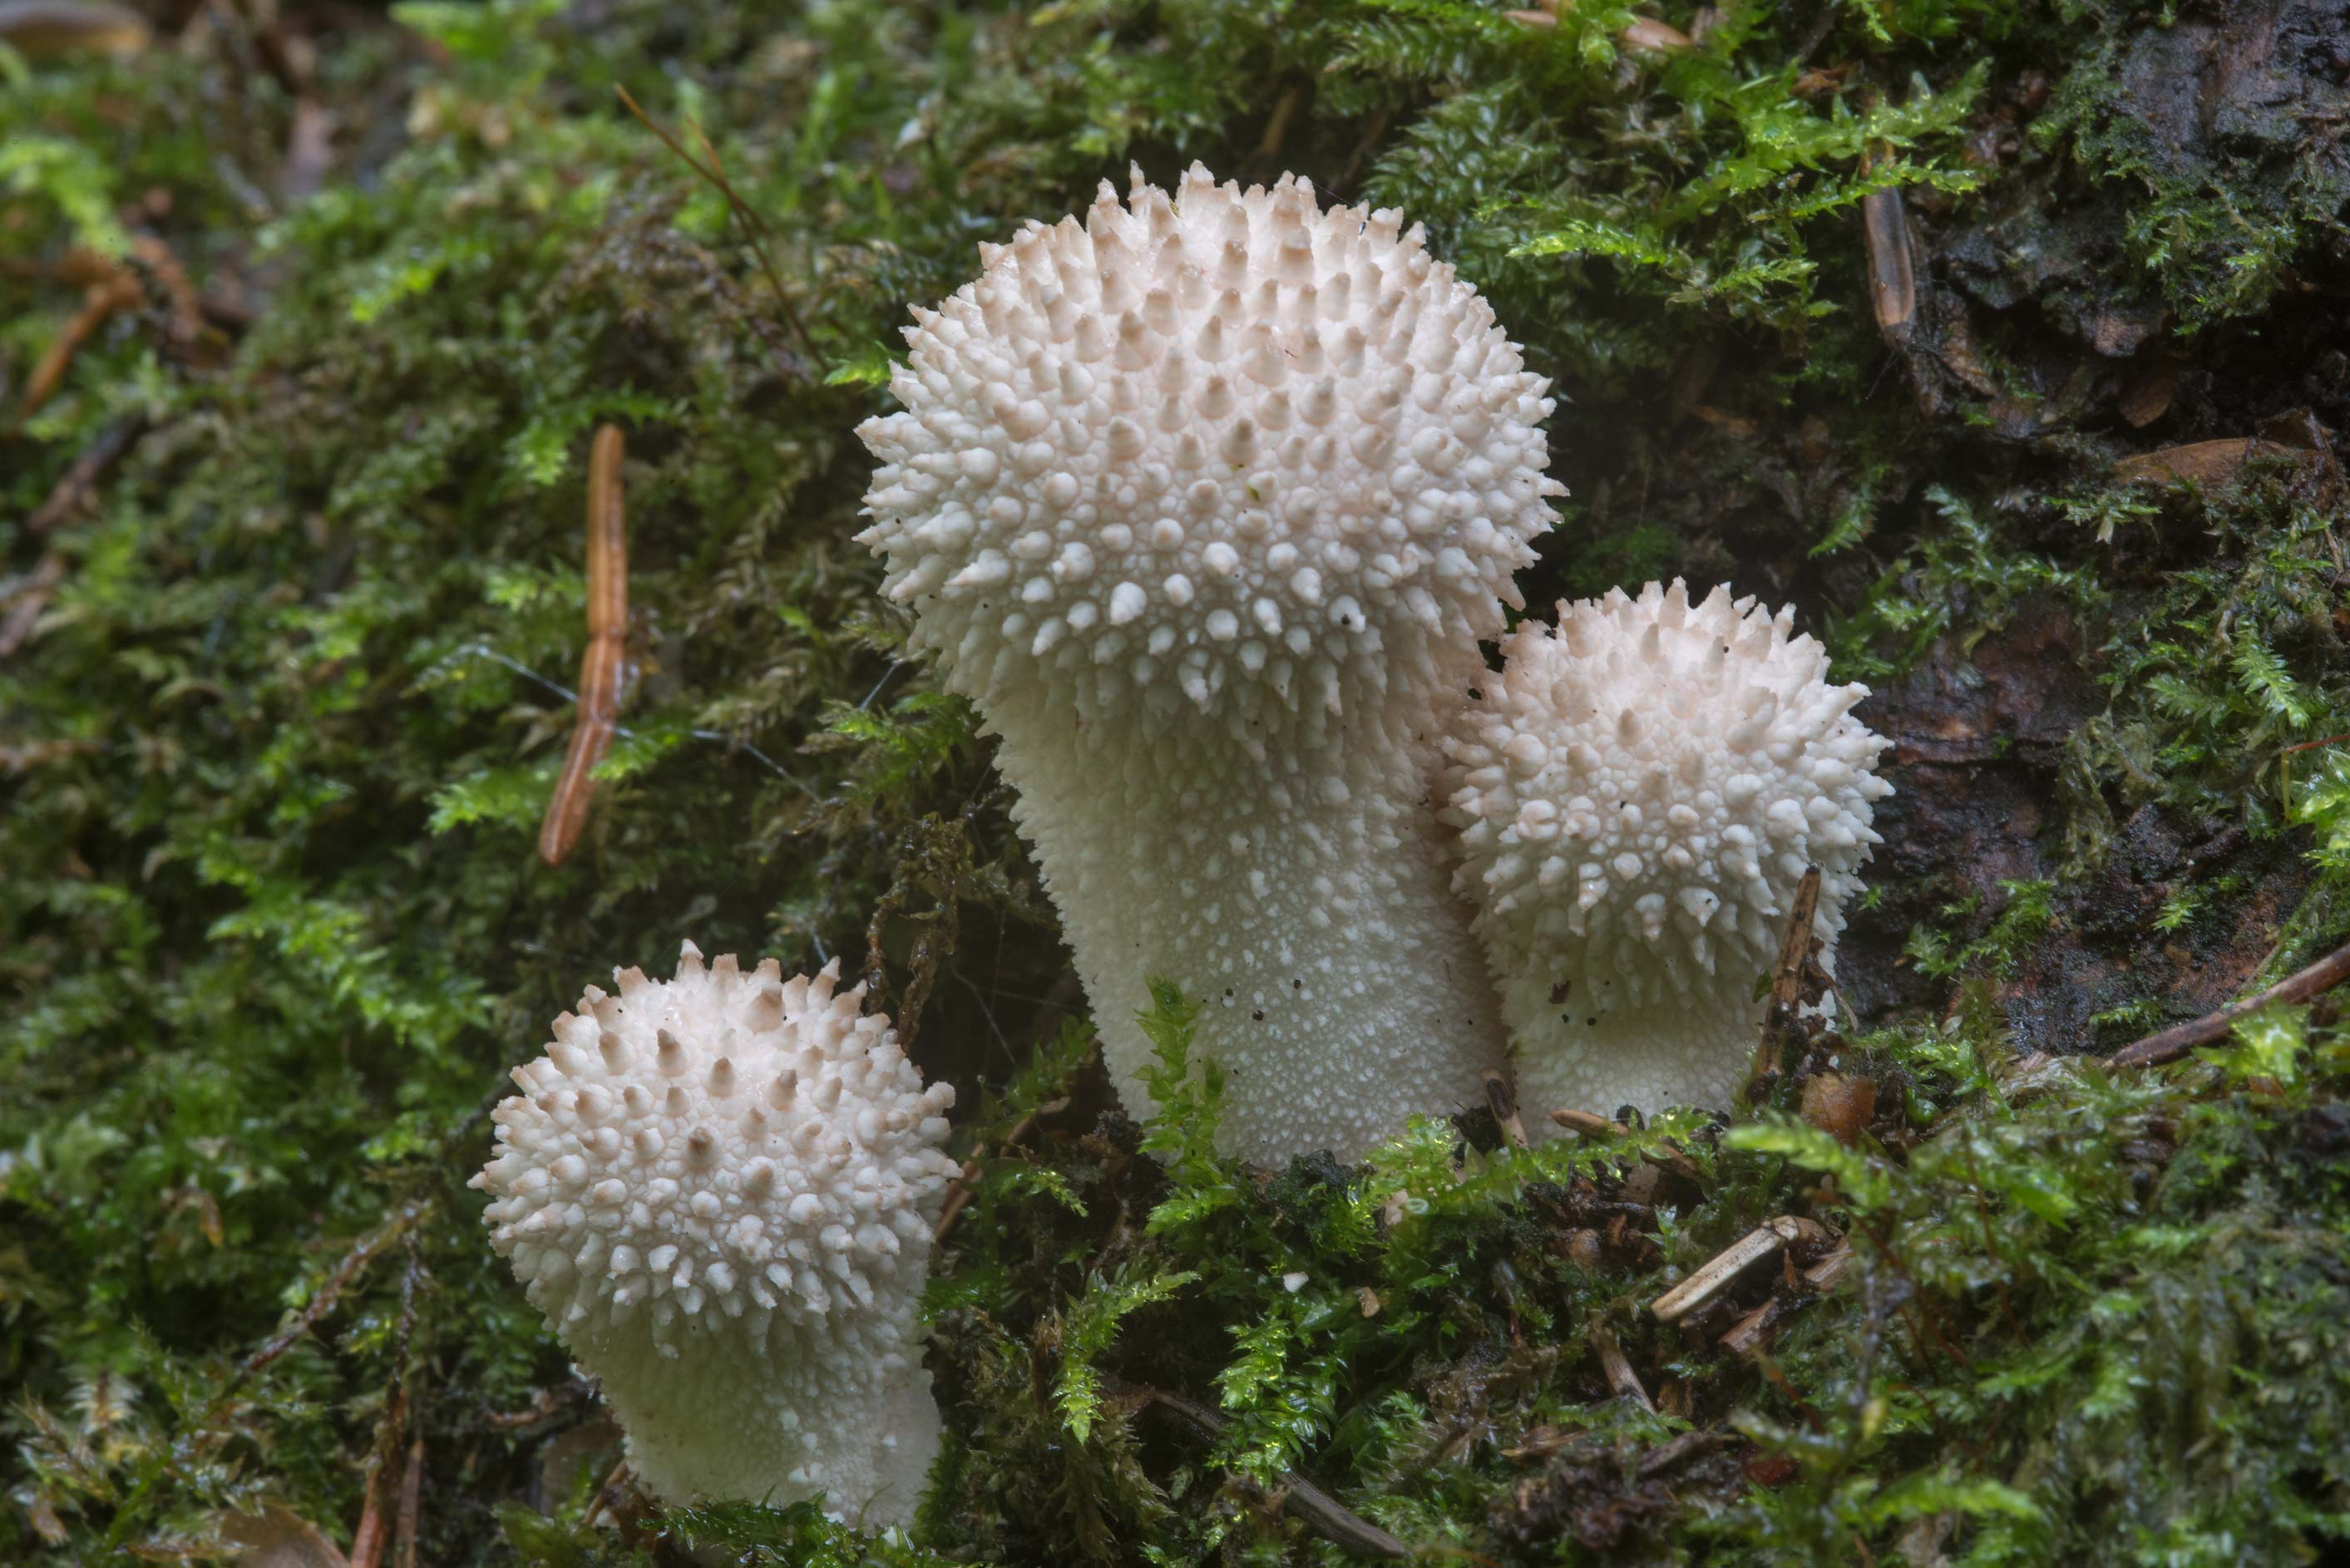 Common puffball mushrooms (Lycoperdon perlatum...a suburb of St.Petersburg, Russia